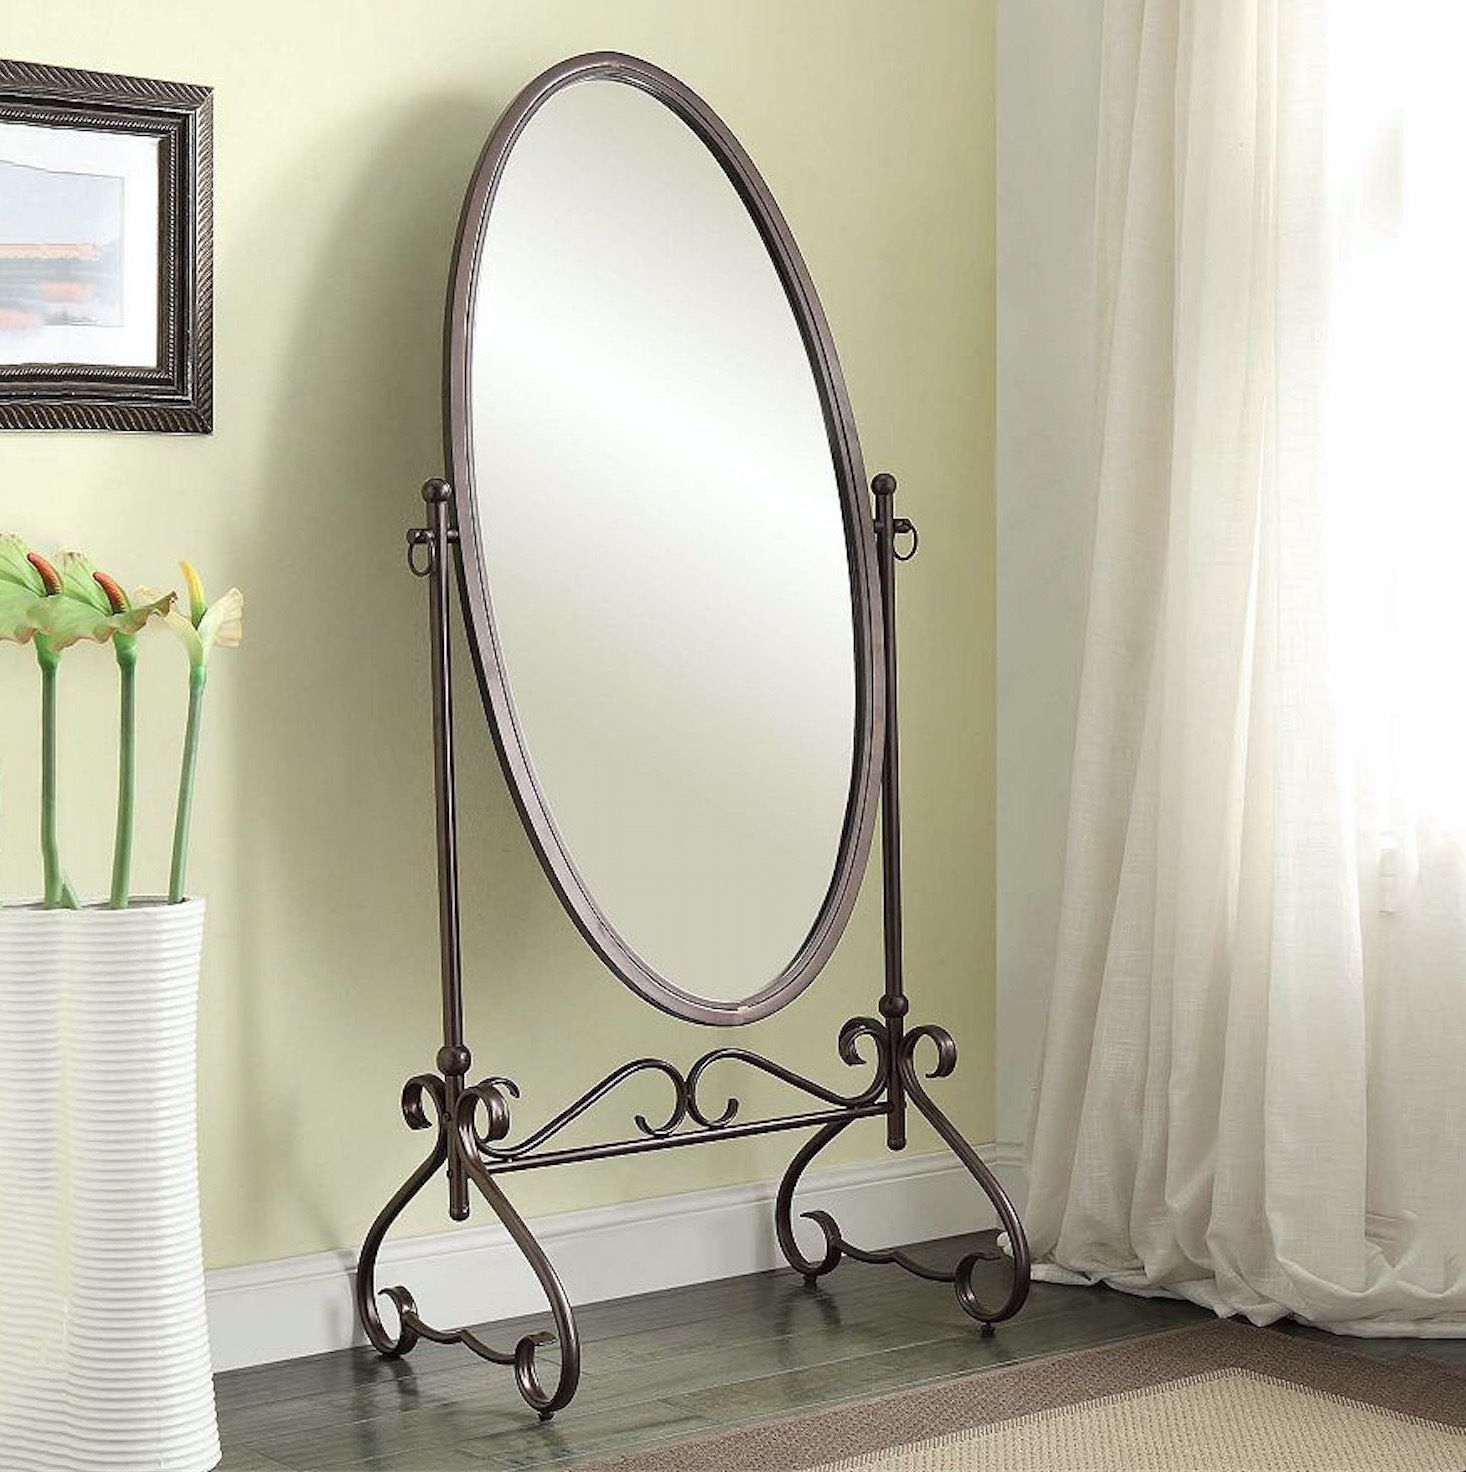 Cheval Floor Mirror Large Oval Antique Bedroom Full Length Tilt Throughout Cheval Freestanding Mirror (Image 9 of 15)